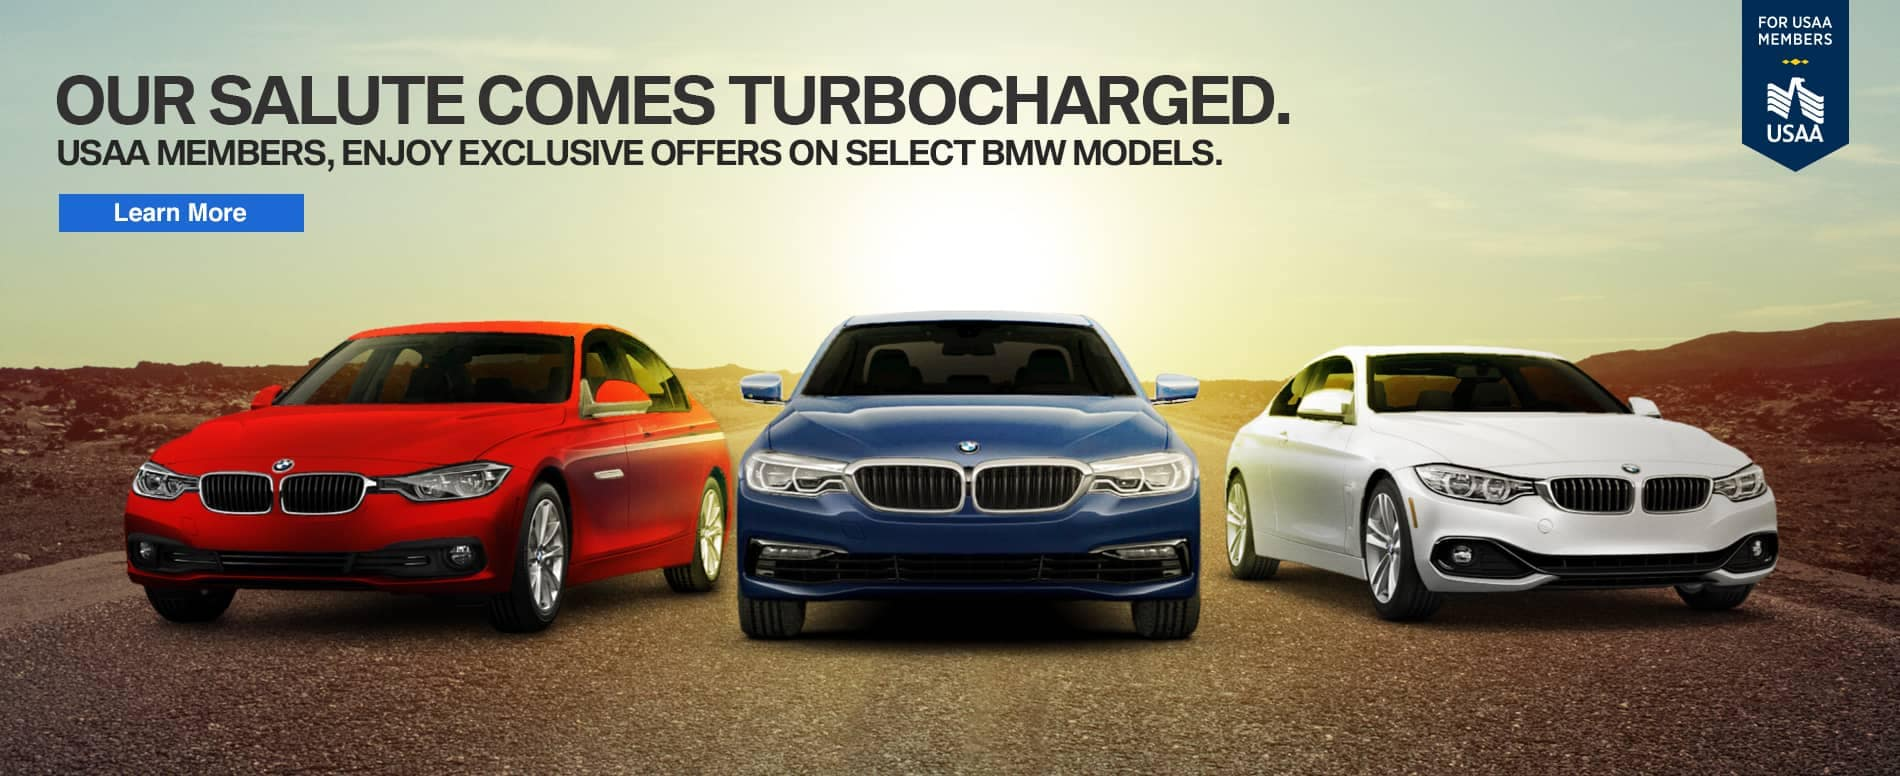 BMW_USAA_Creative_Refresh_FMA_1900x776